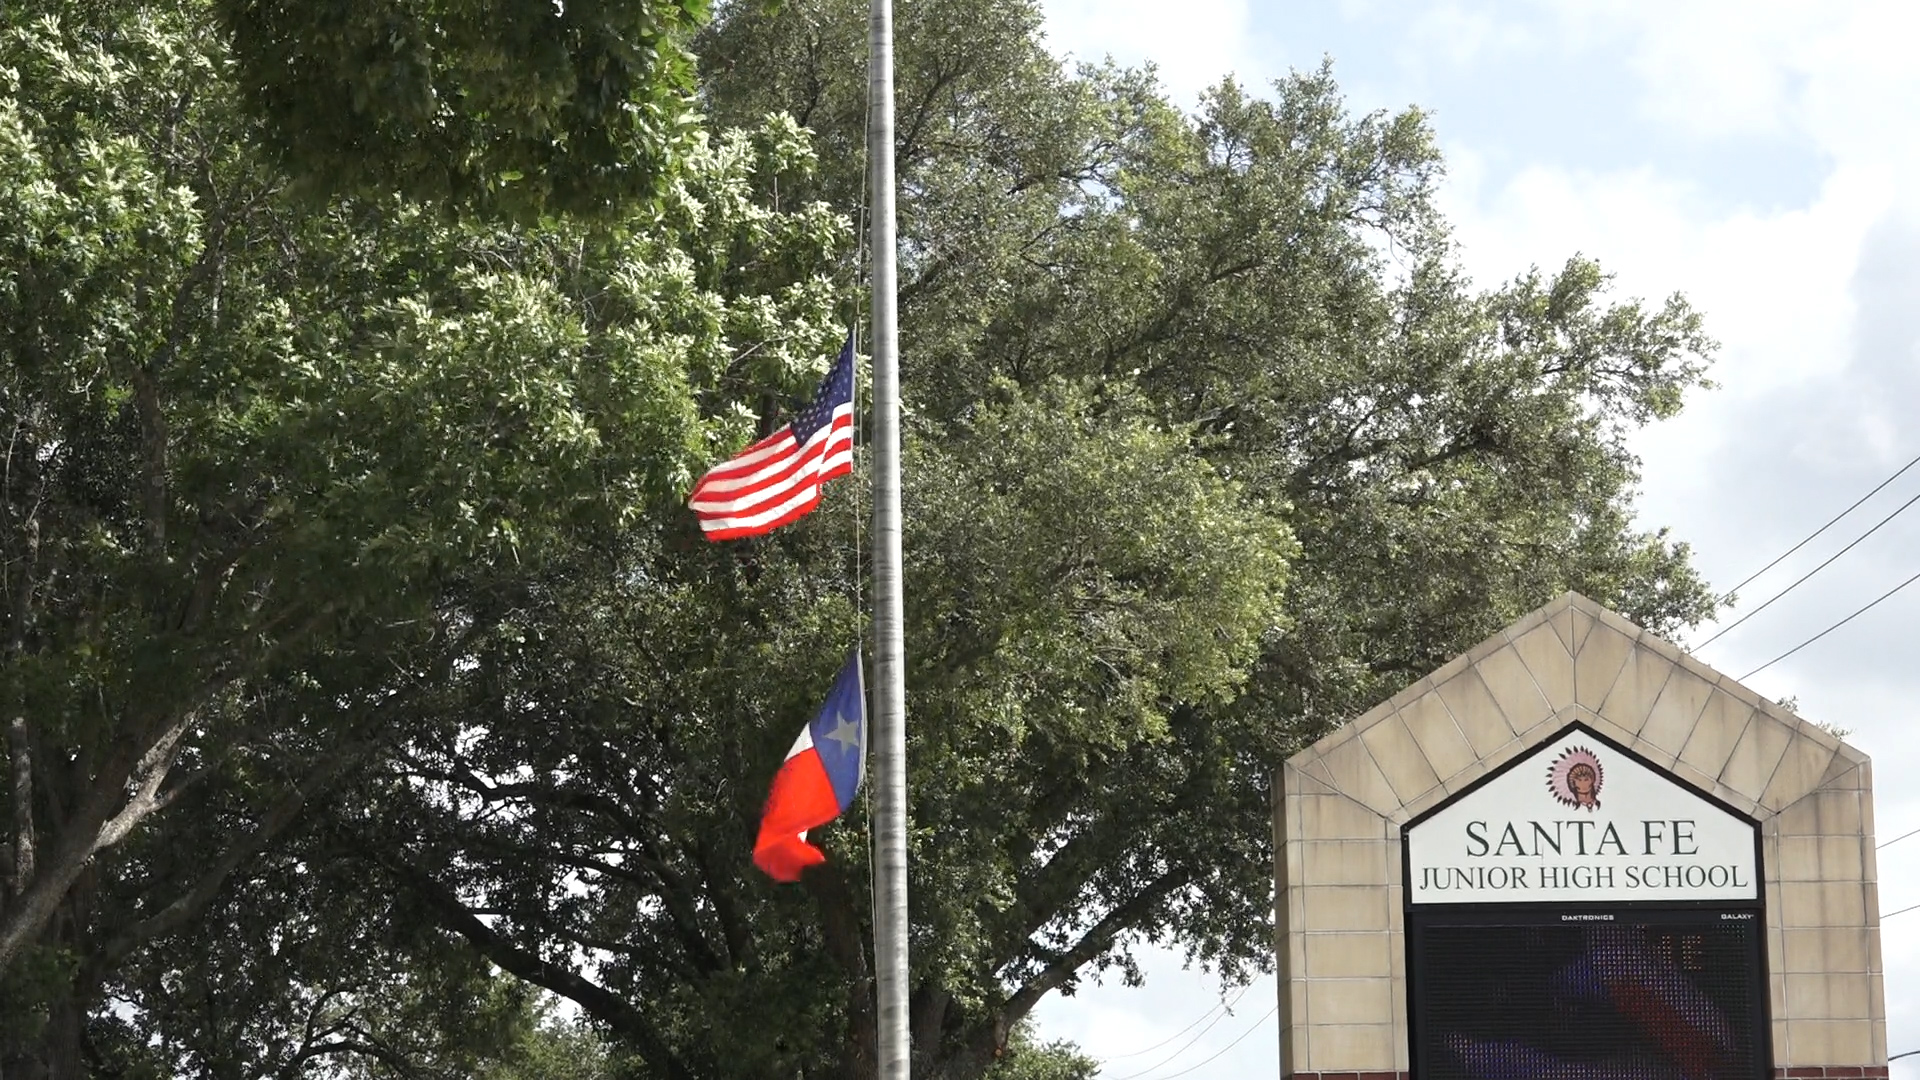 President Trump ordered U.S. flags be flown at half-staff until sunset May 22, 2018. This is the flag at Santa Fe Junior High in Santa Fe, Texas.